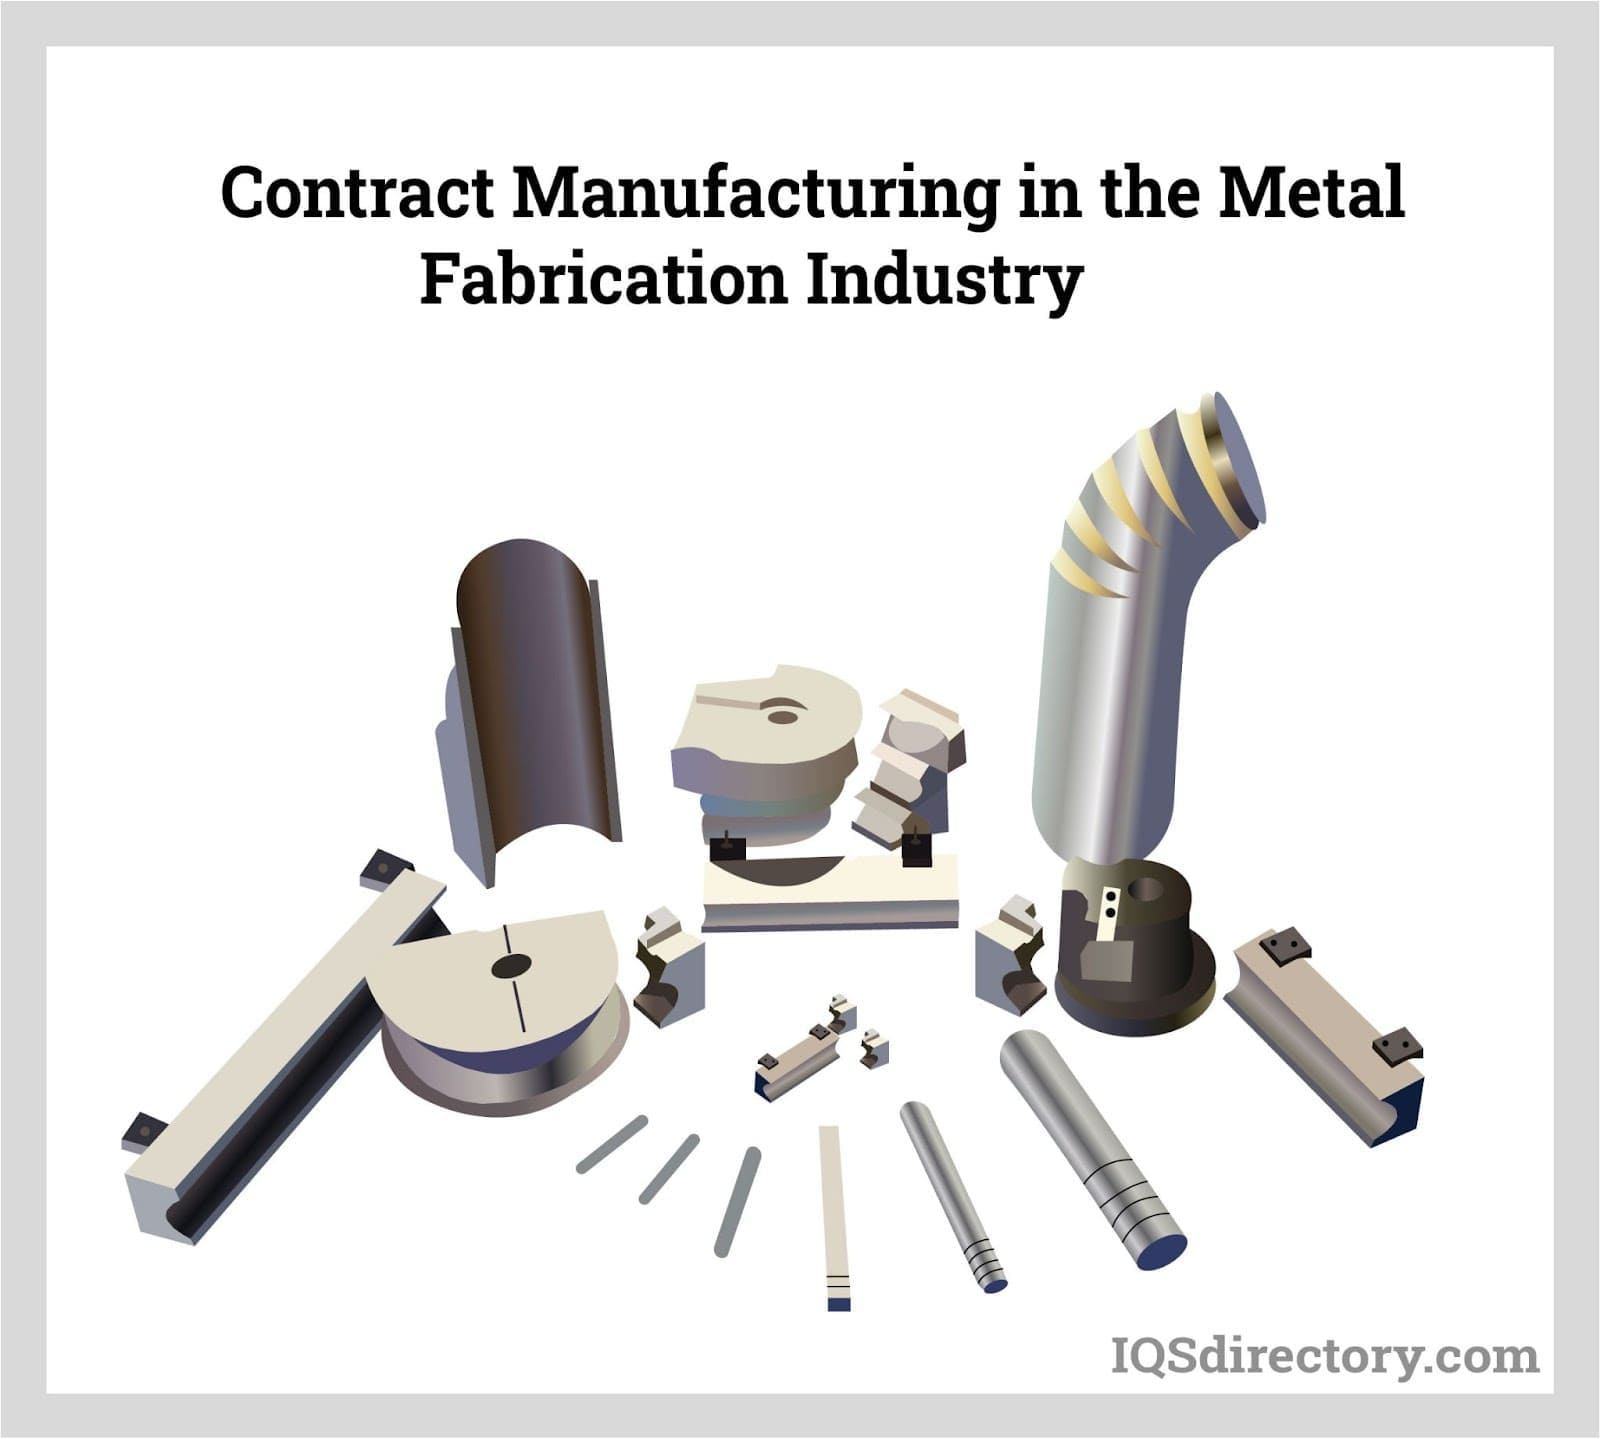 Contract Manufacturing in the Metal Fabrication Industry